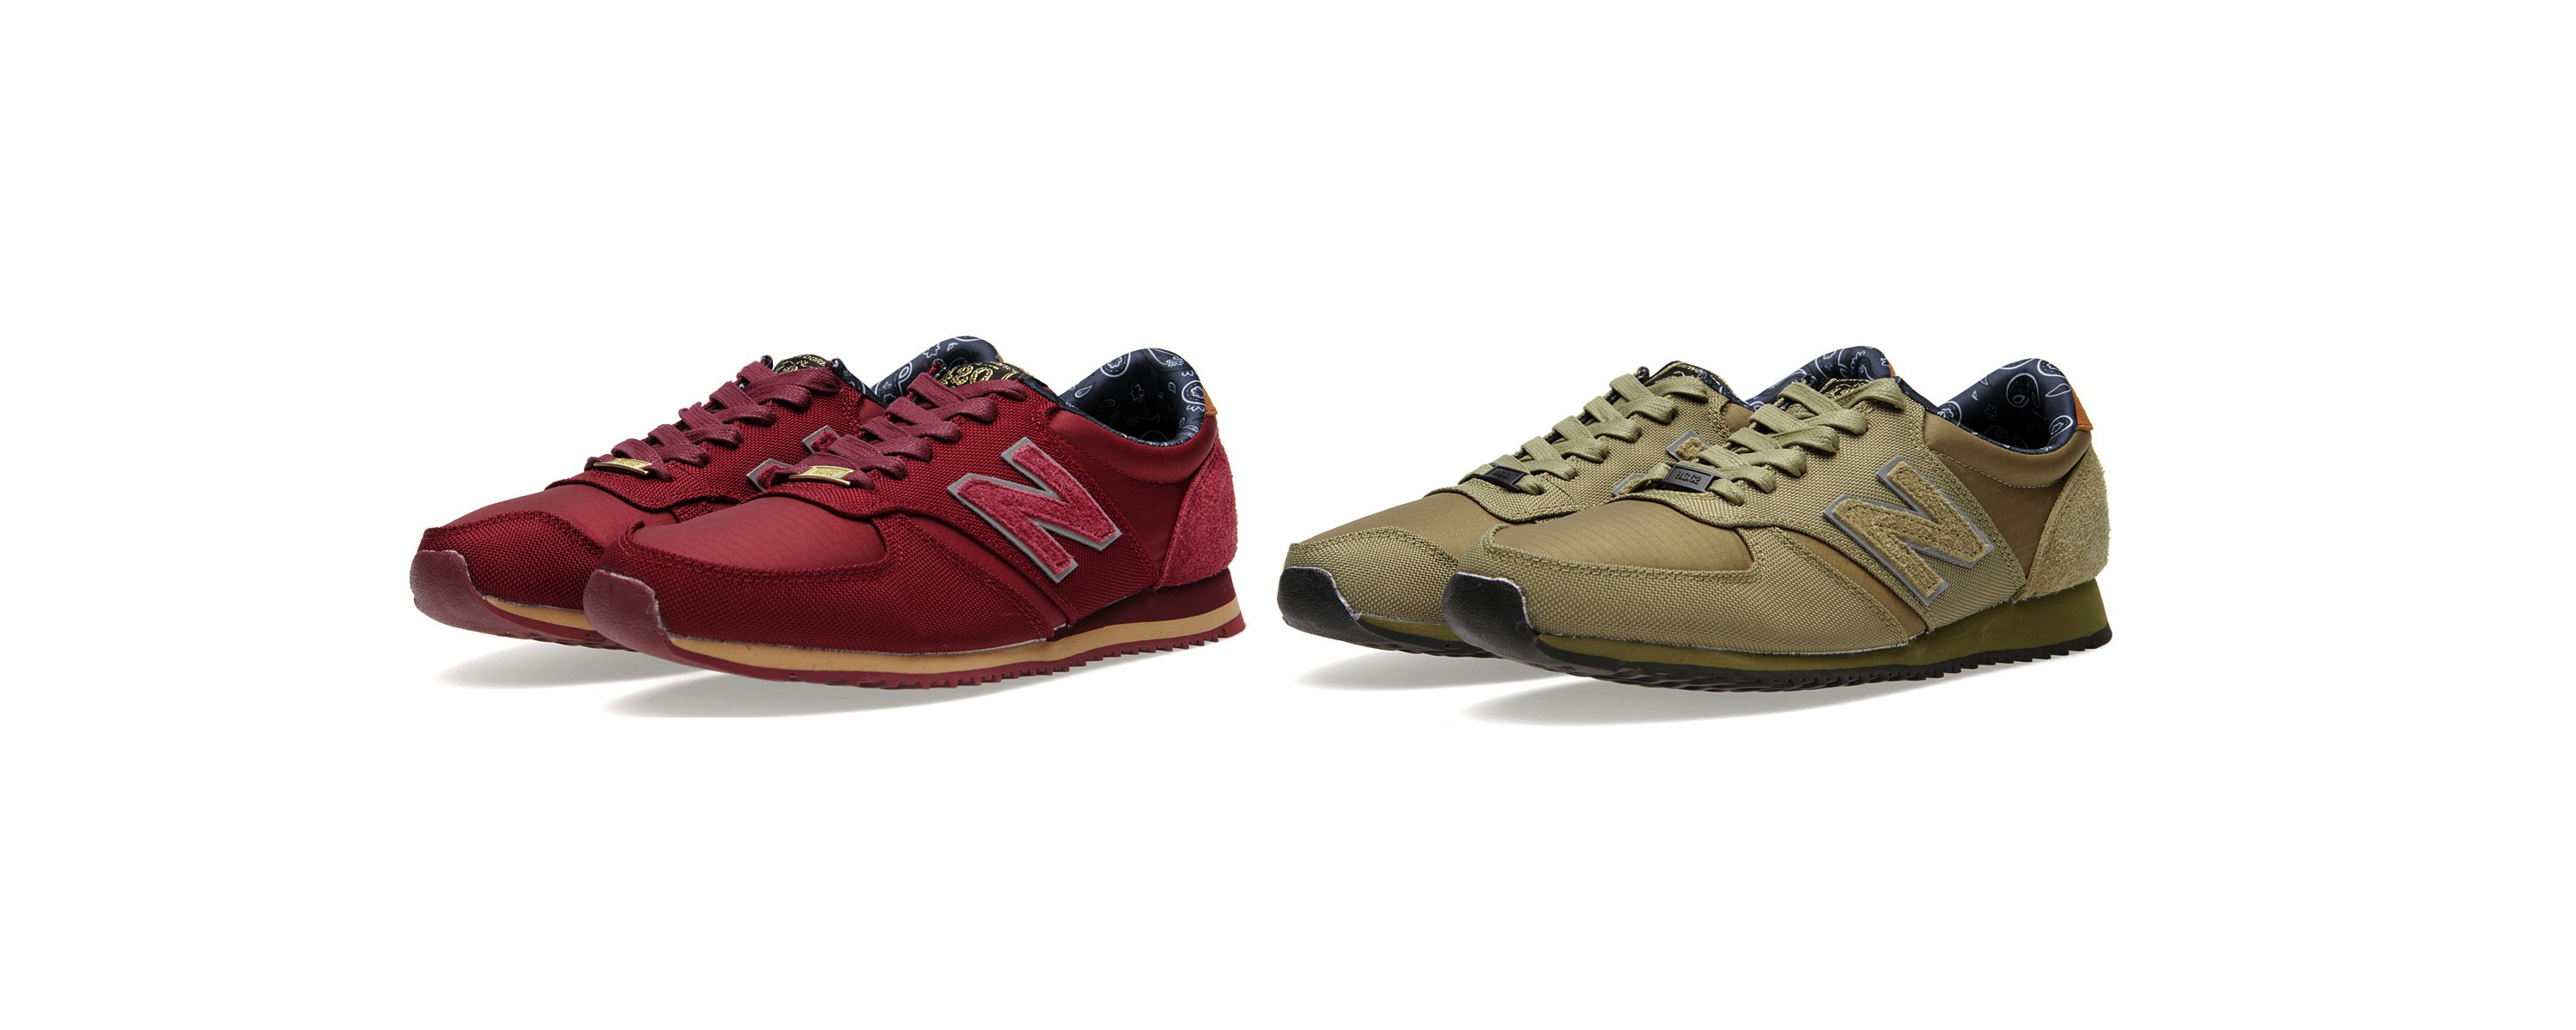 New Balance x Herschel Supply Co. U420